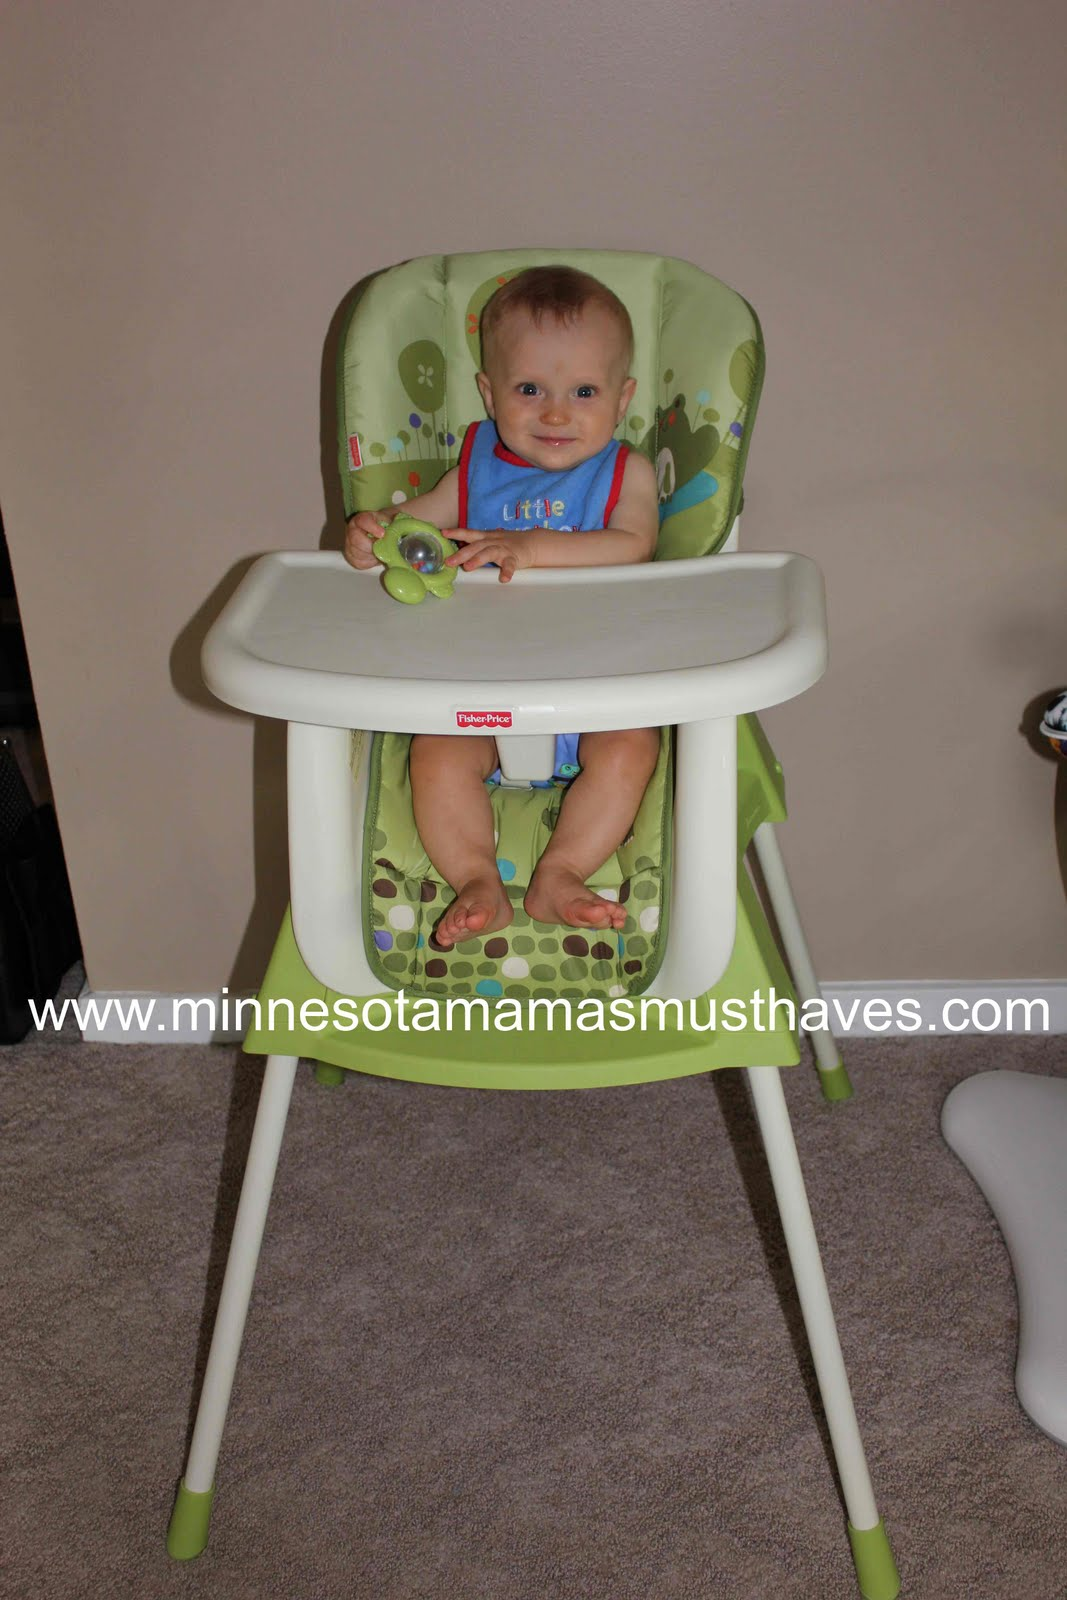 fisher price space saving high chair recliner leather are you short on space? sick of the baby gear taking over house? - must have mom